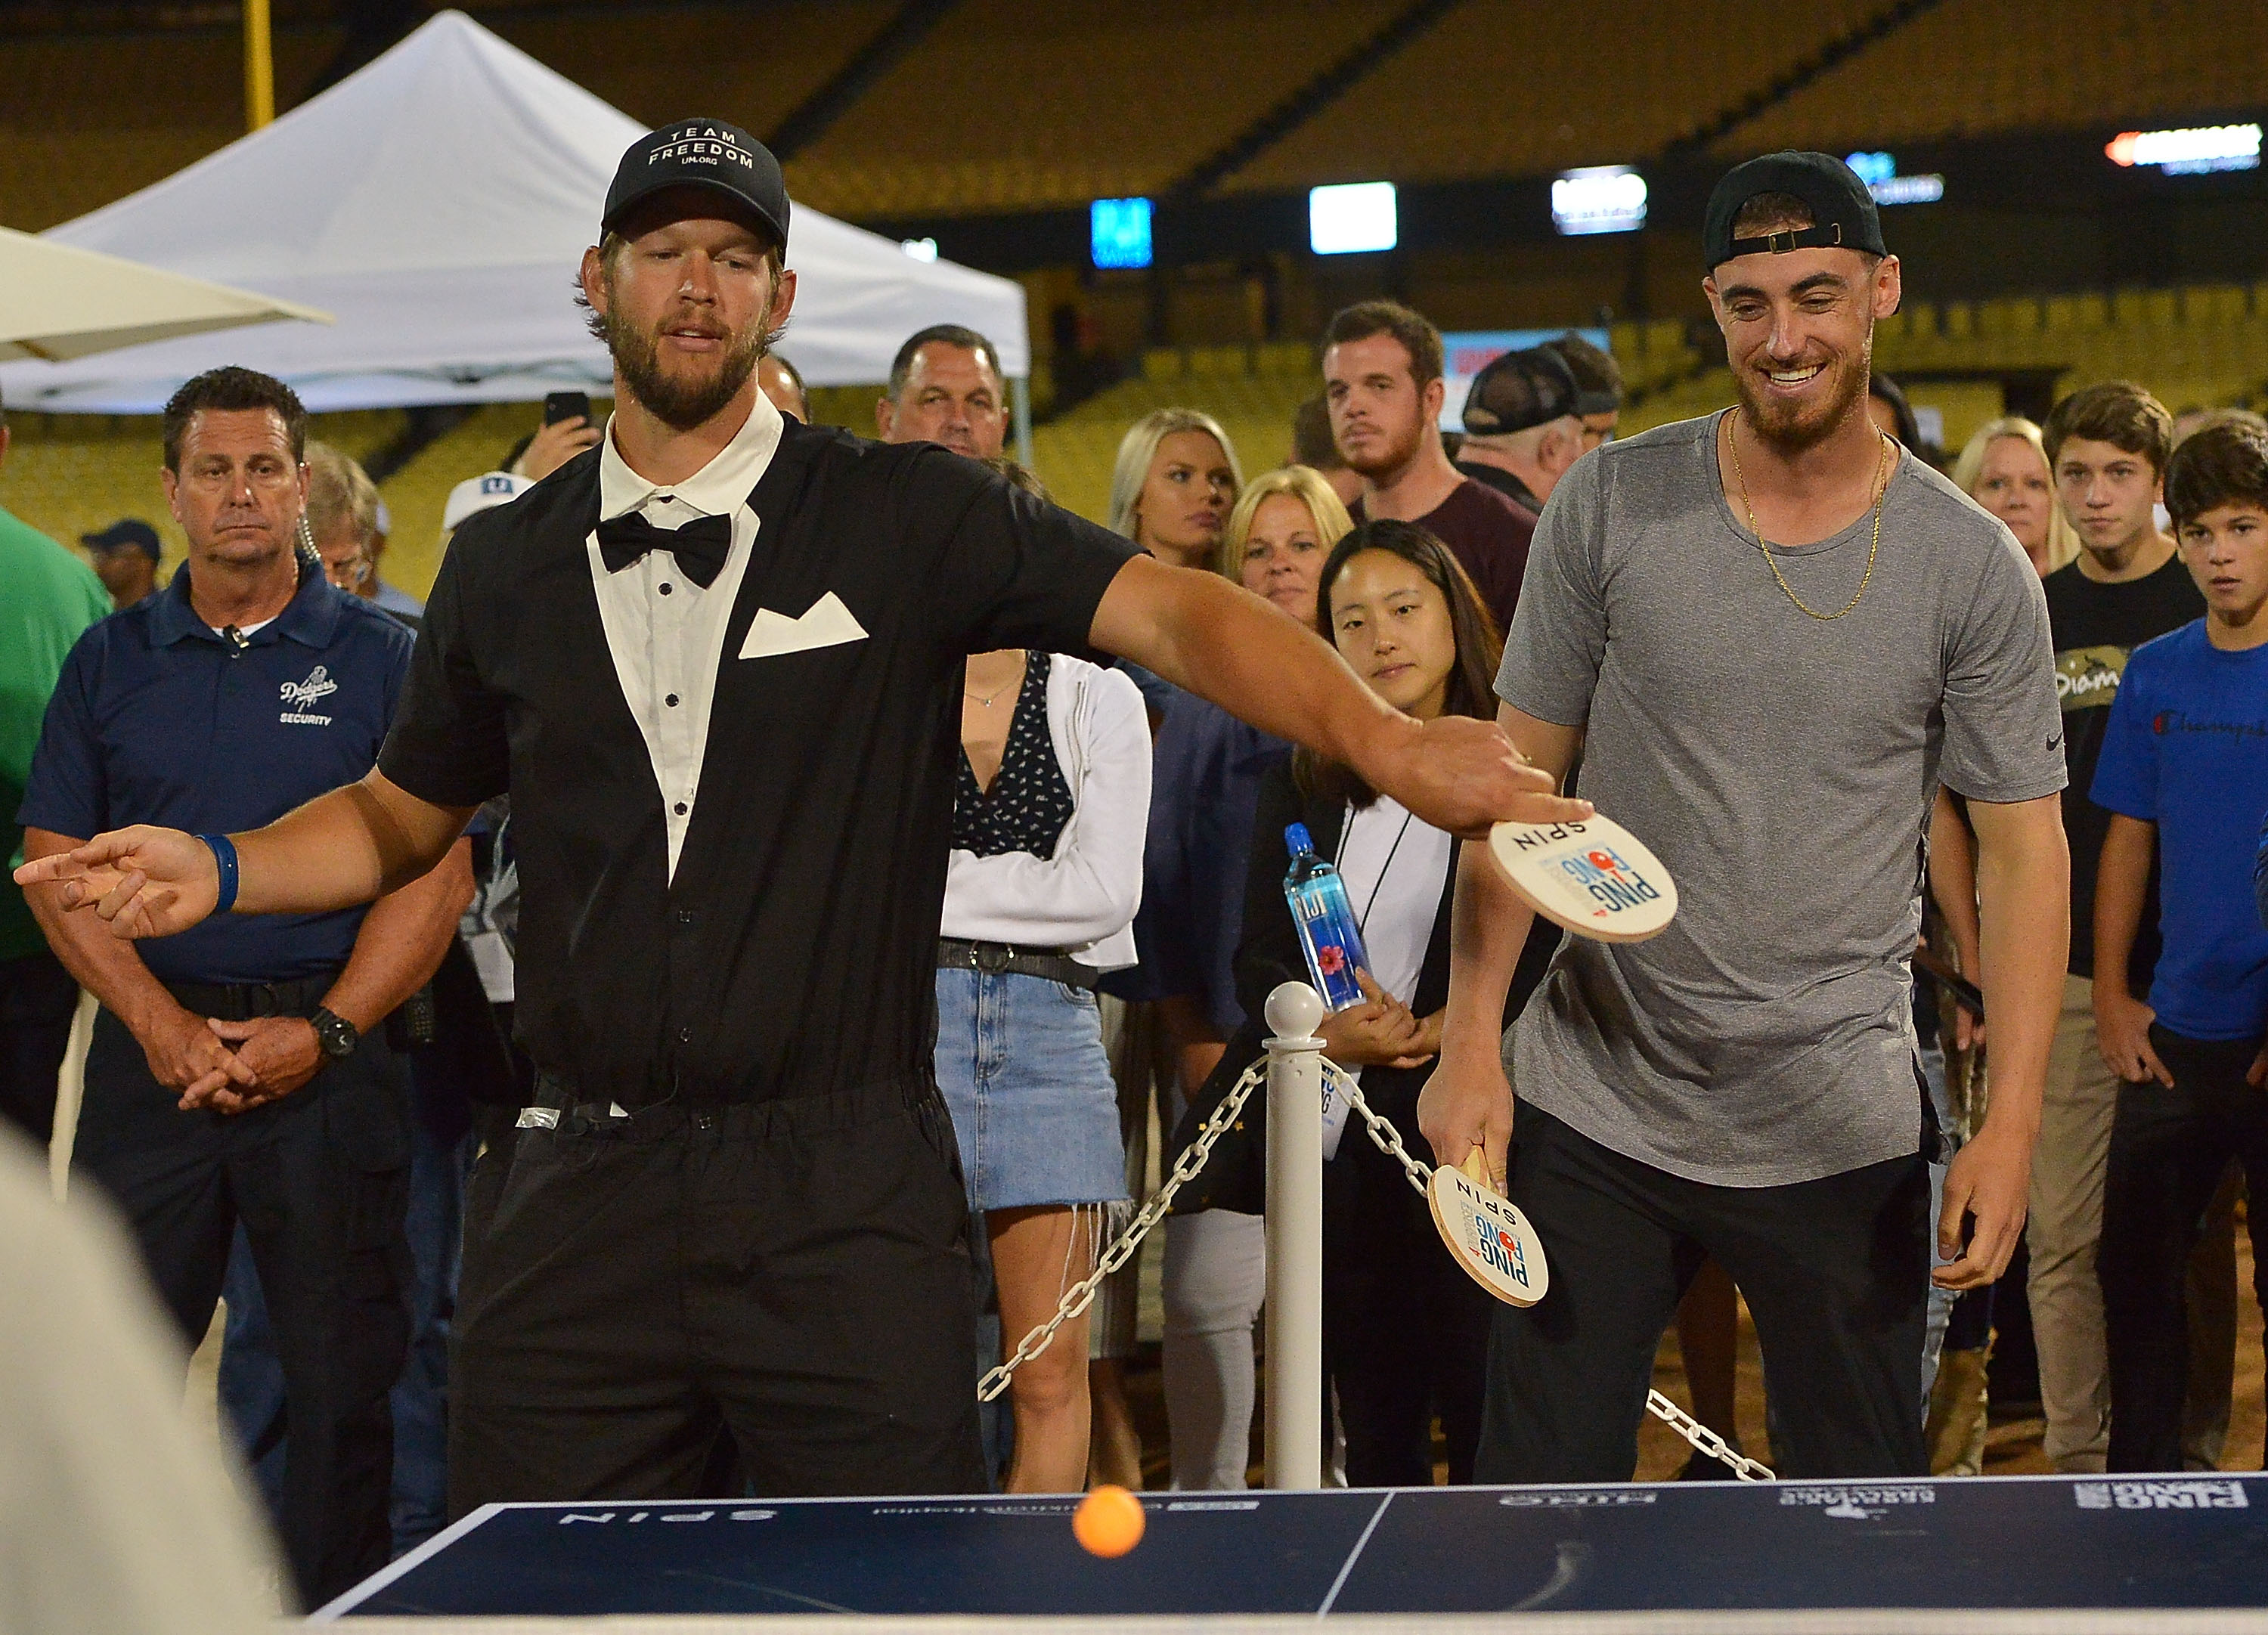 Photos: Celebrities and Sports Stars Take a Swing at Clayton Kershaw's Ping Pong Challenge